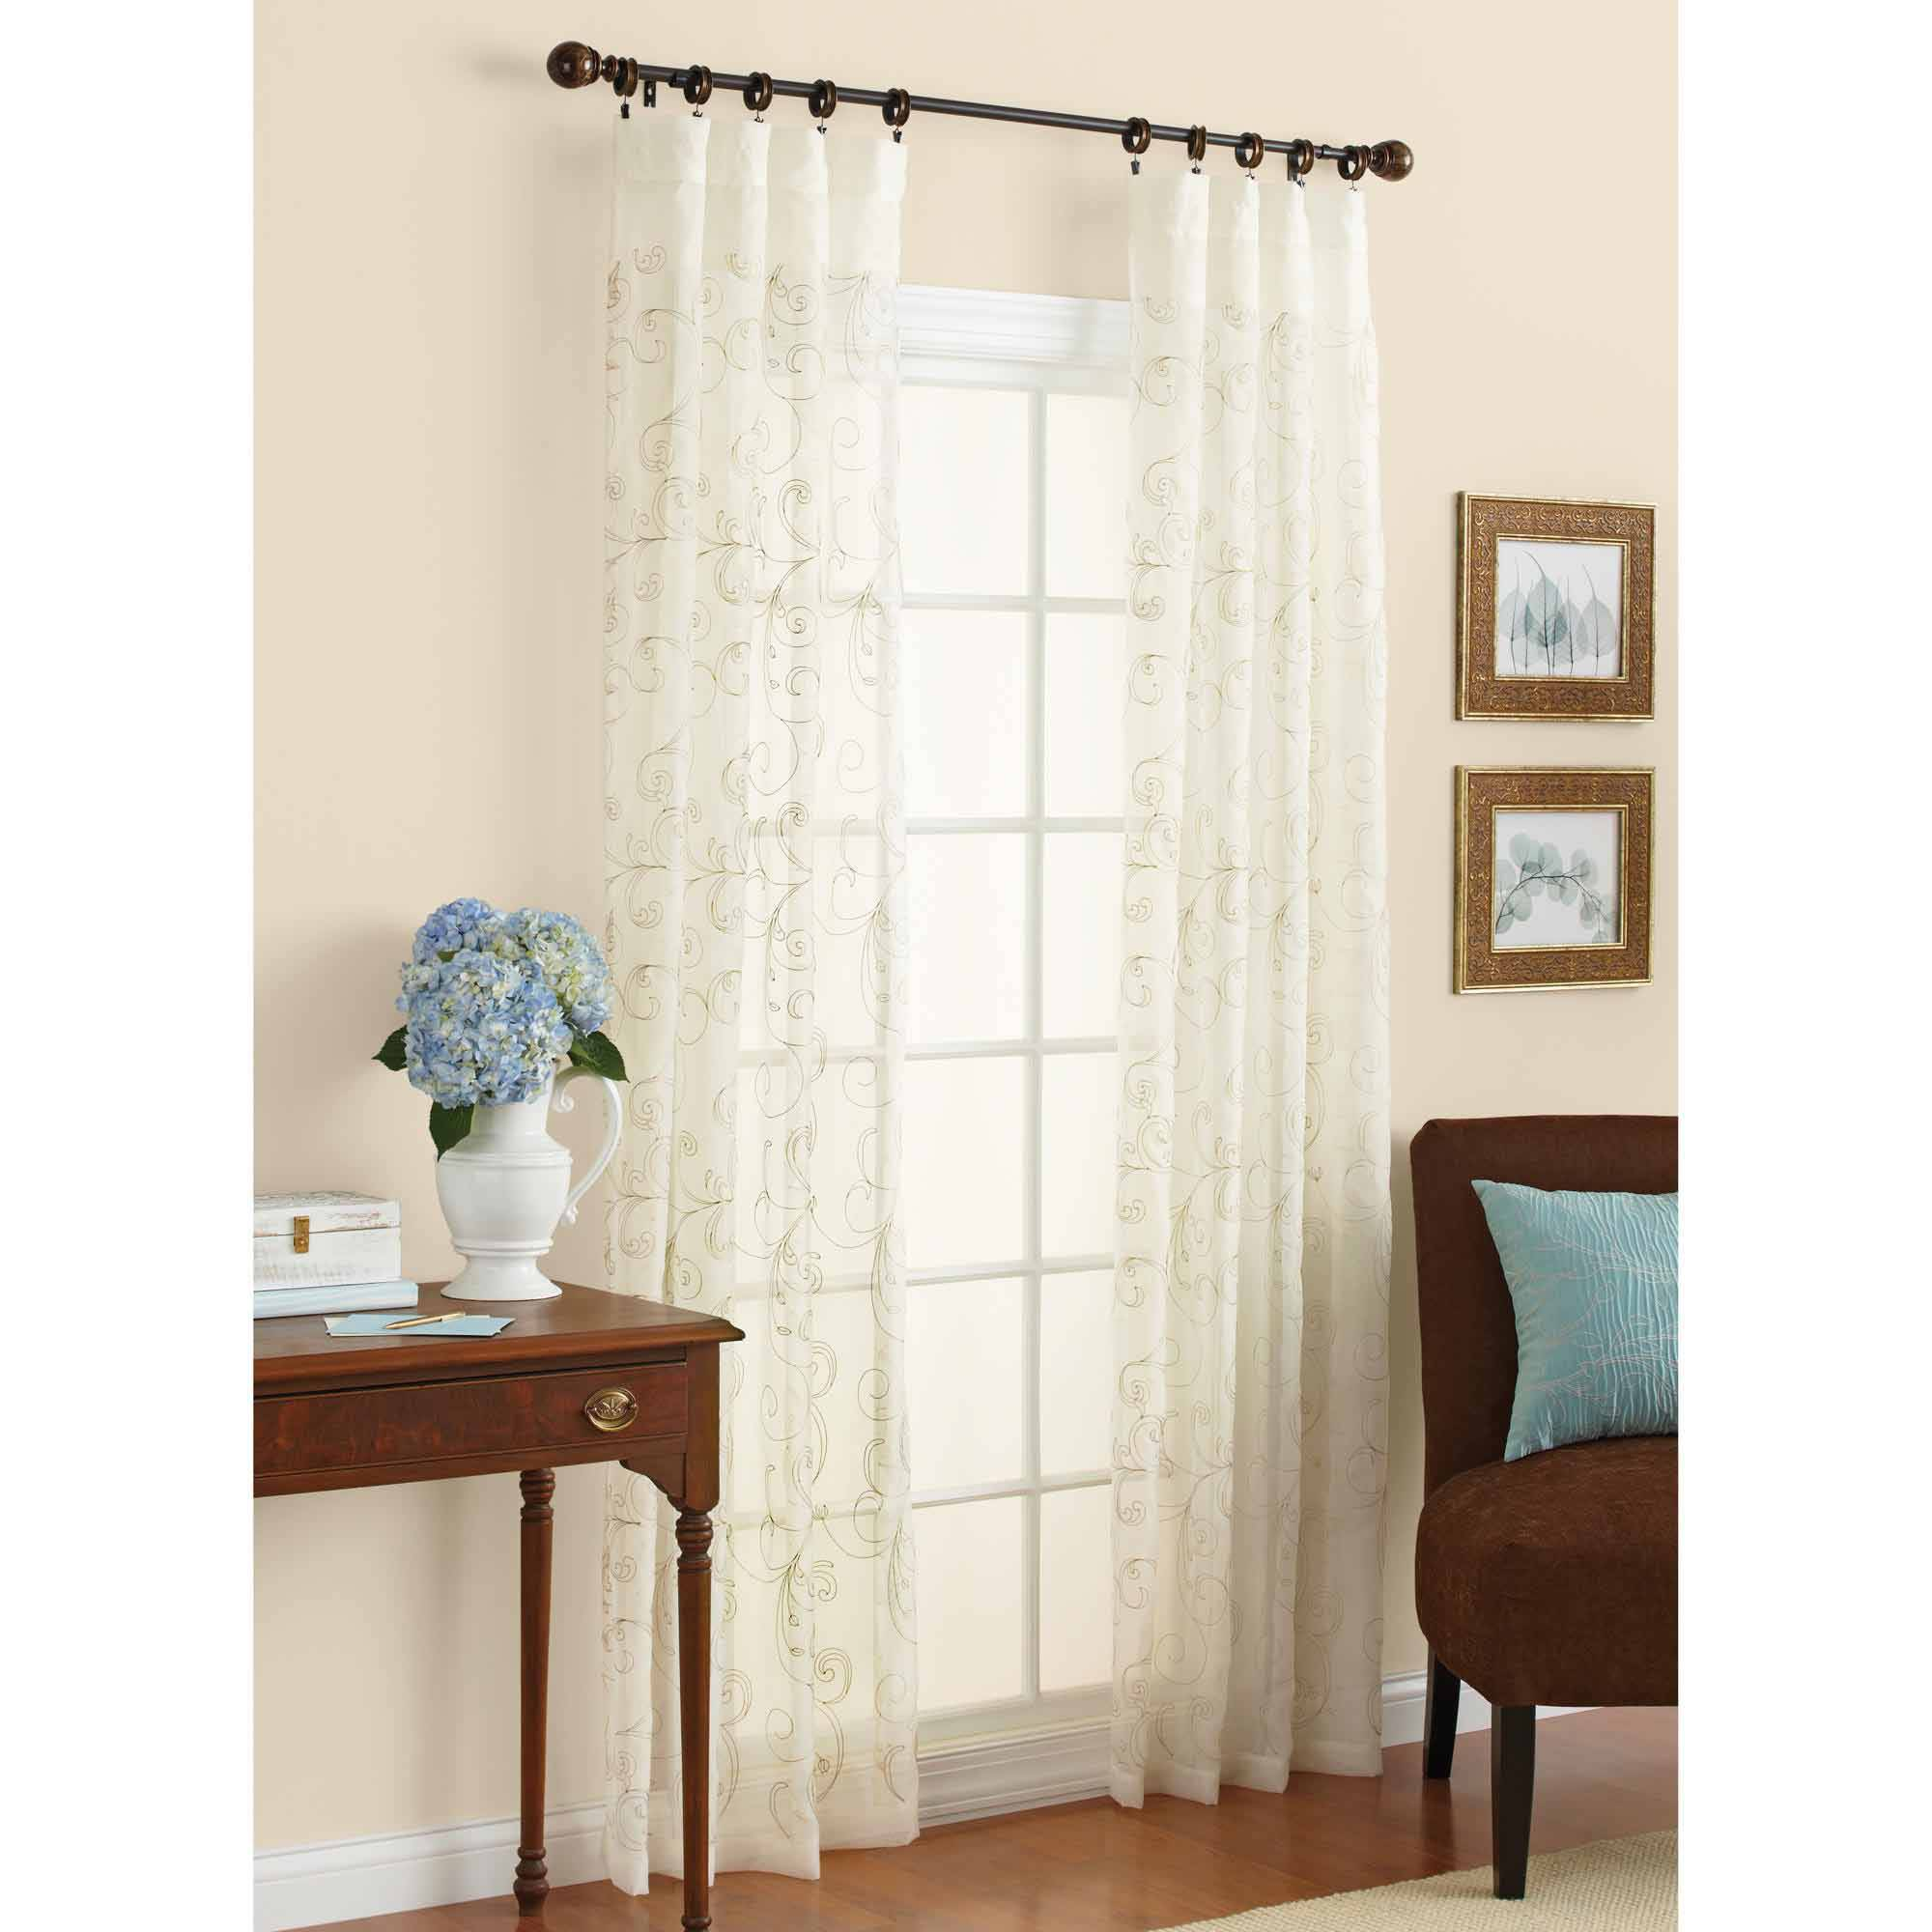 Better Homes Gardens: Better Homes And Gardens Embroidered Sheer Curtain Panel